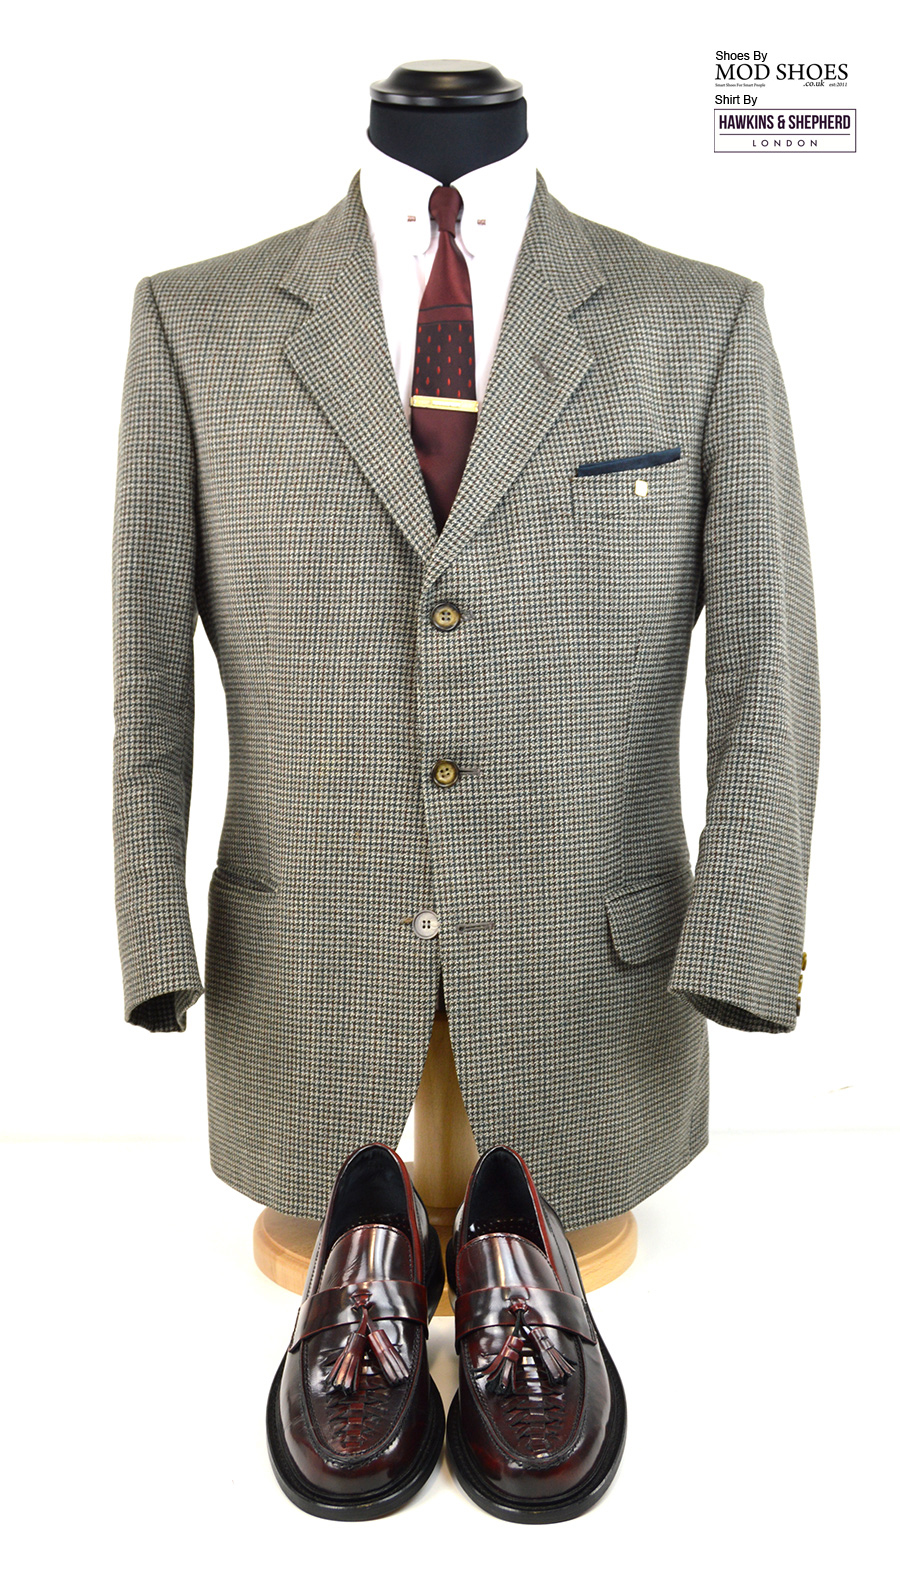 modshoes-brogues-bridgers-with-suit-and-hawkins-shirt